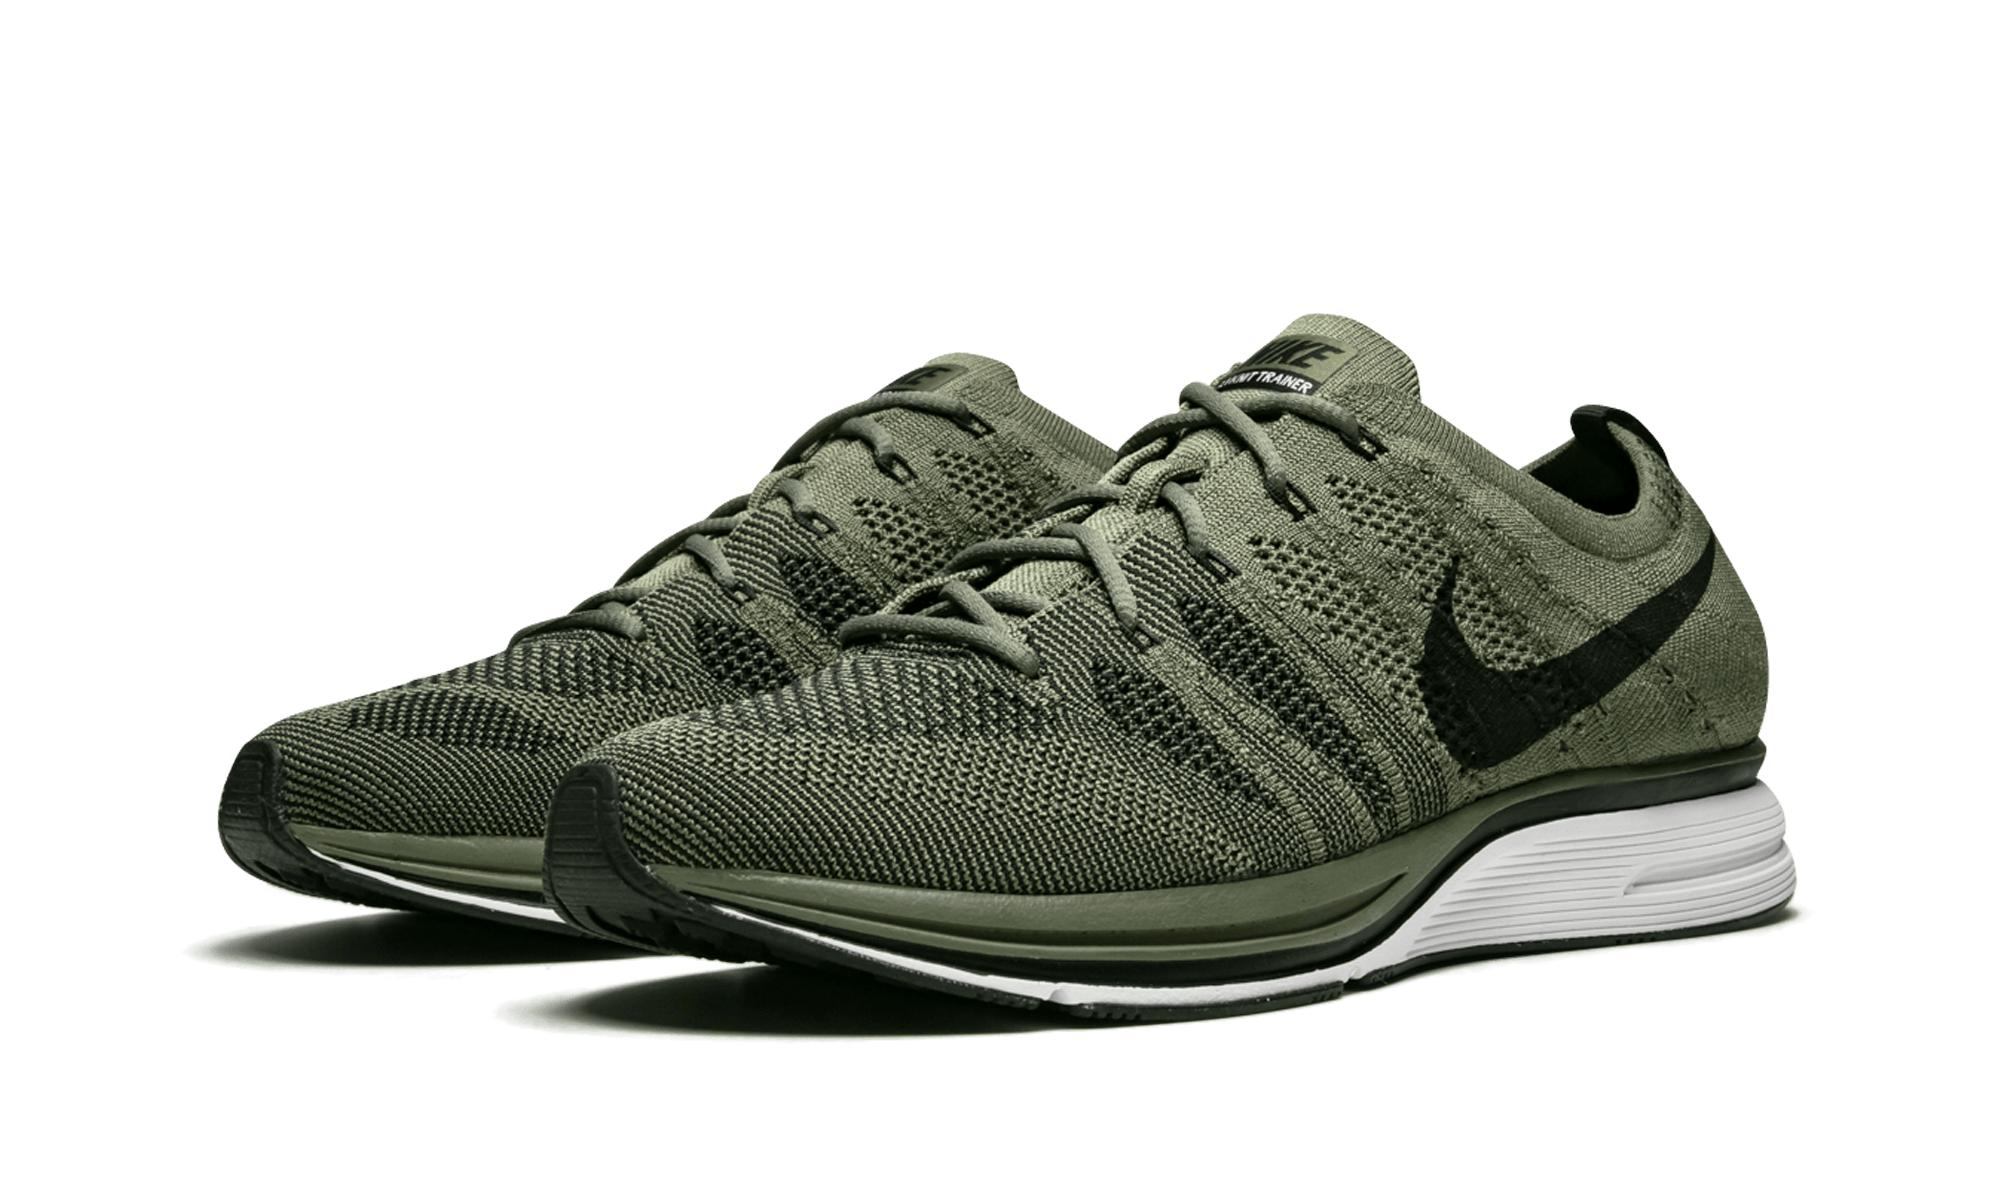 huge selection of aef5e 8a35a Nike - Green Flyknit Trainer Medium Olive for Men - Lyst. View fullscreen